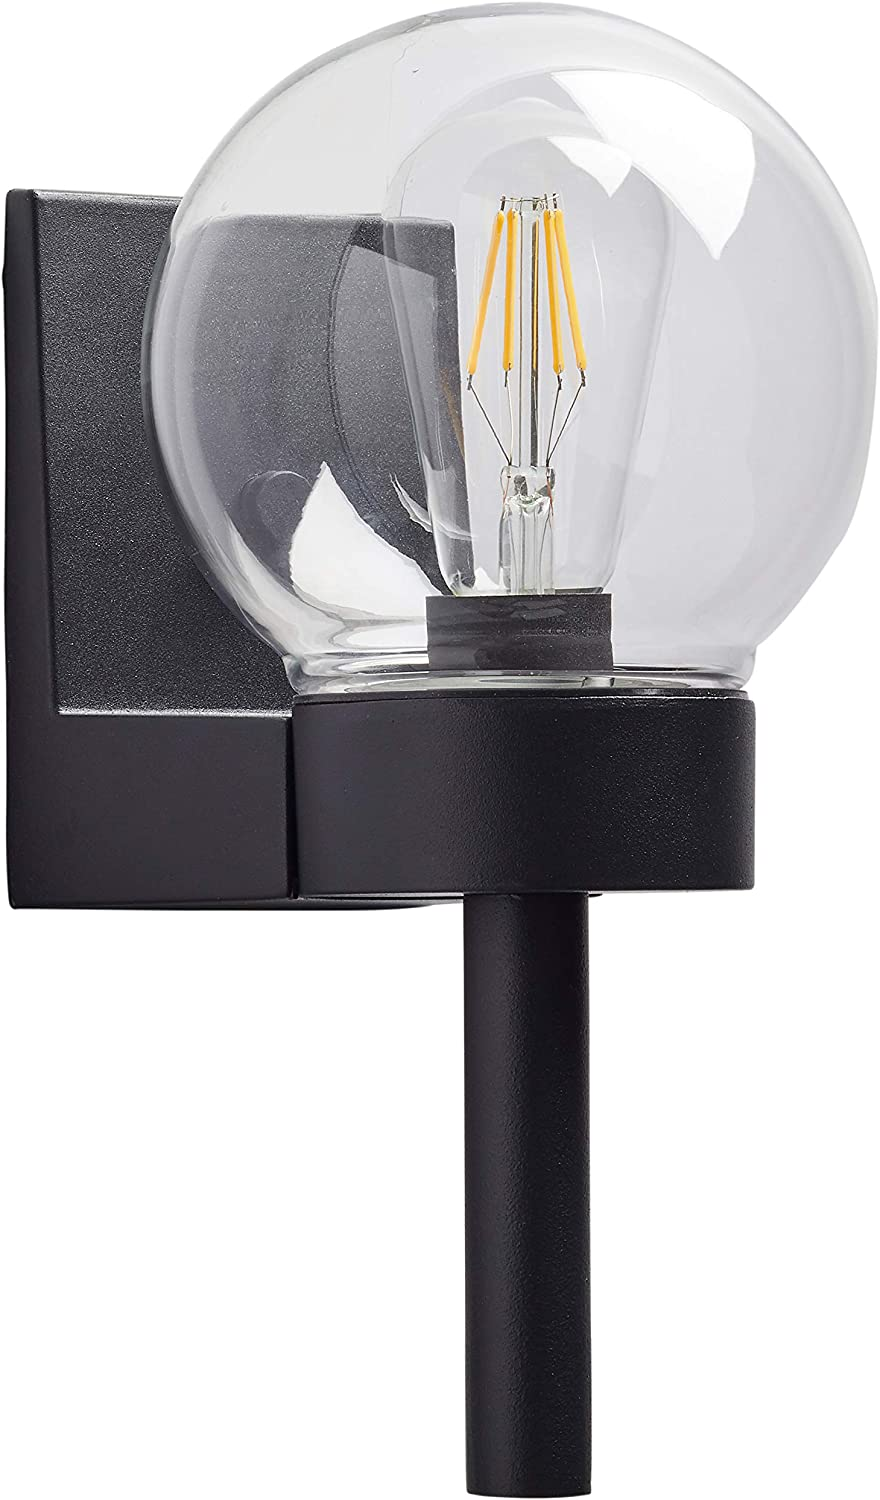 Amazon Brand – Rivet Mid-Century Modern Glass Globe Exterior Porch Wall Sconce Fixture with Light Bulb - 5.87 x 7.12 x 11.87 Inches, Black